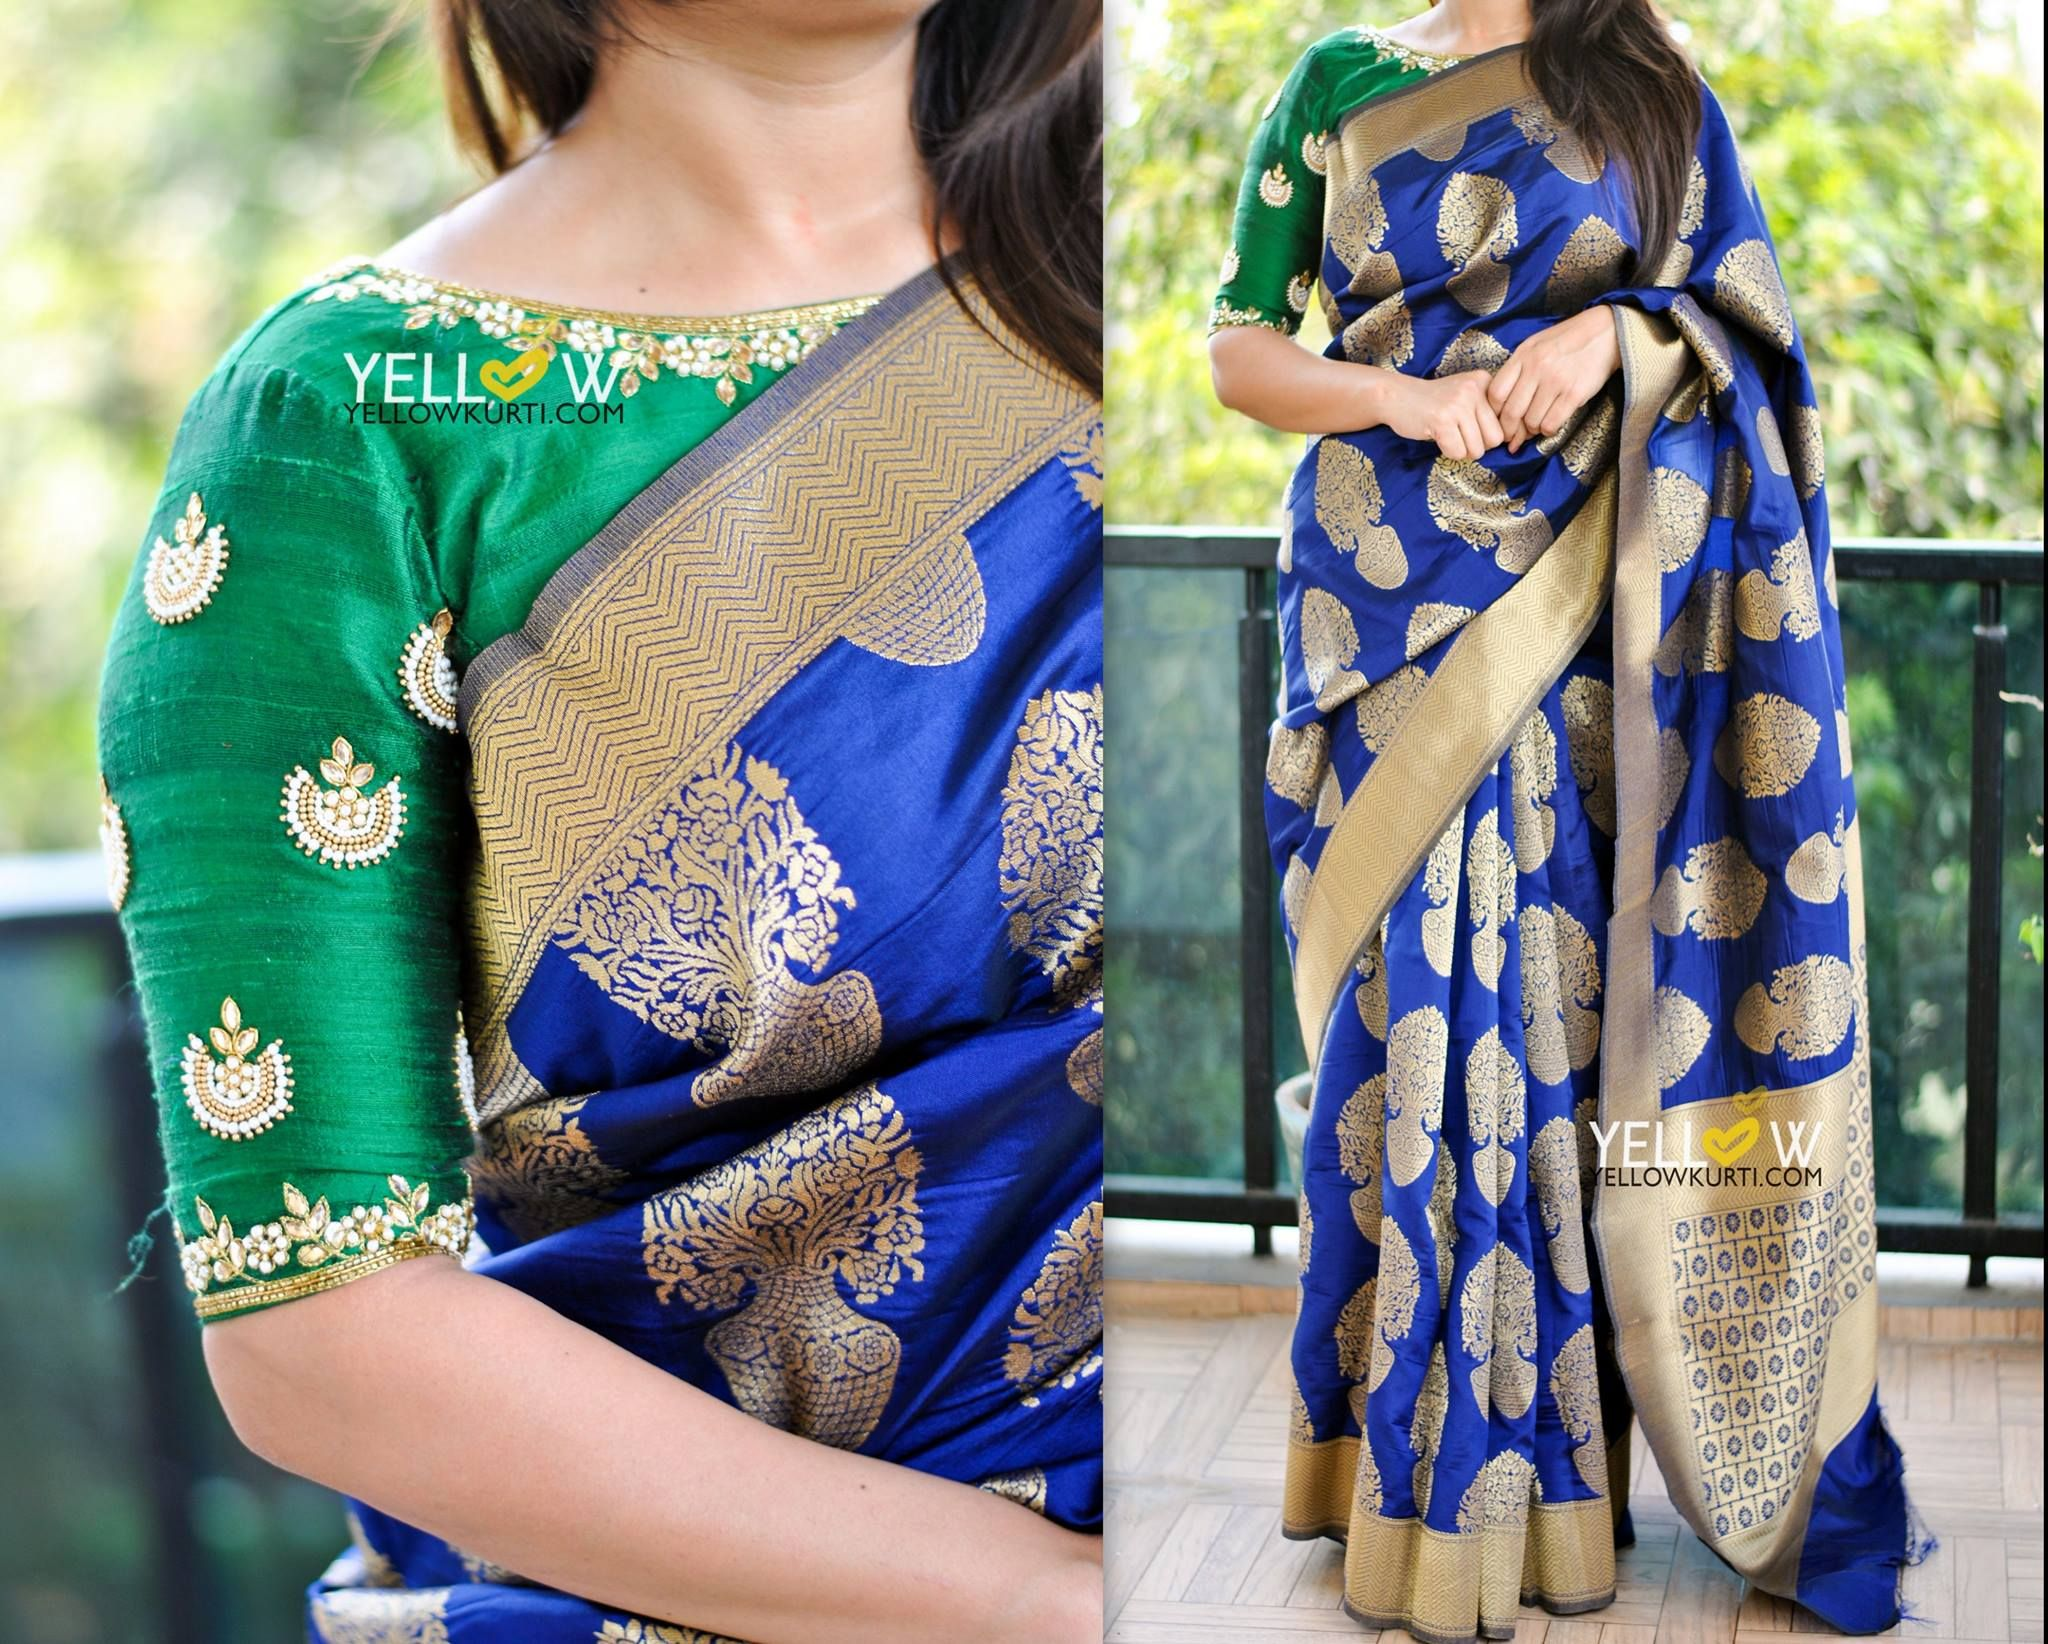 c0afae0110a72 Navy Blue Semi banarasi Saree .Blouse - Comes with a plain blue blouse  material with gold border as in the saree. Blouse shown in the picture can  be made on ...